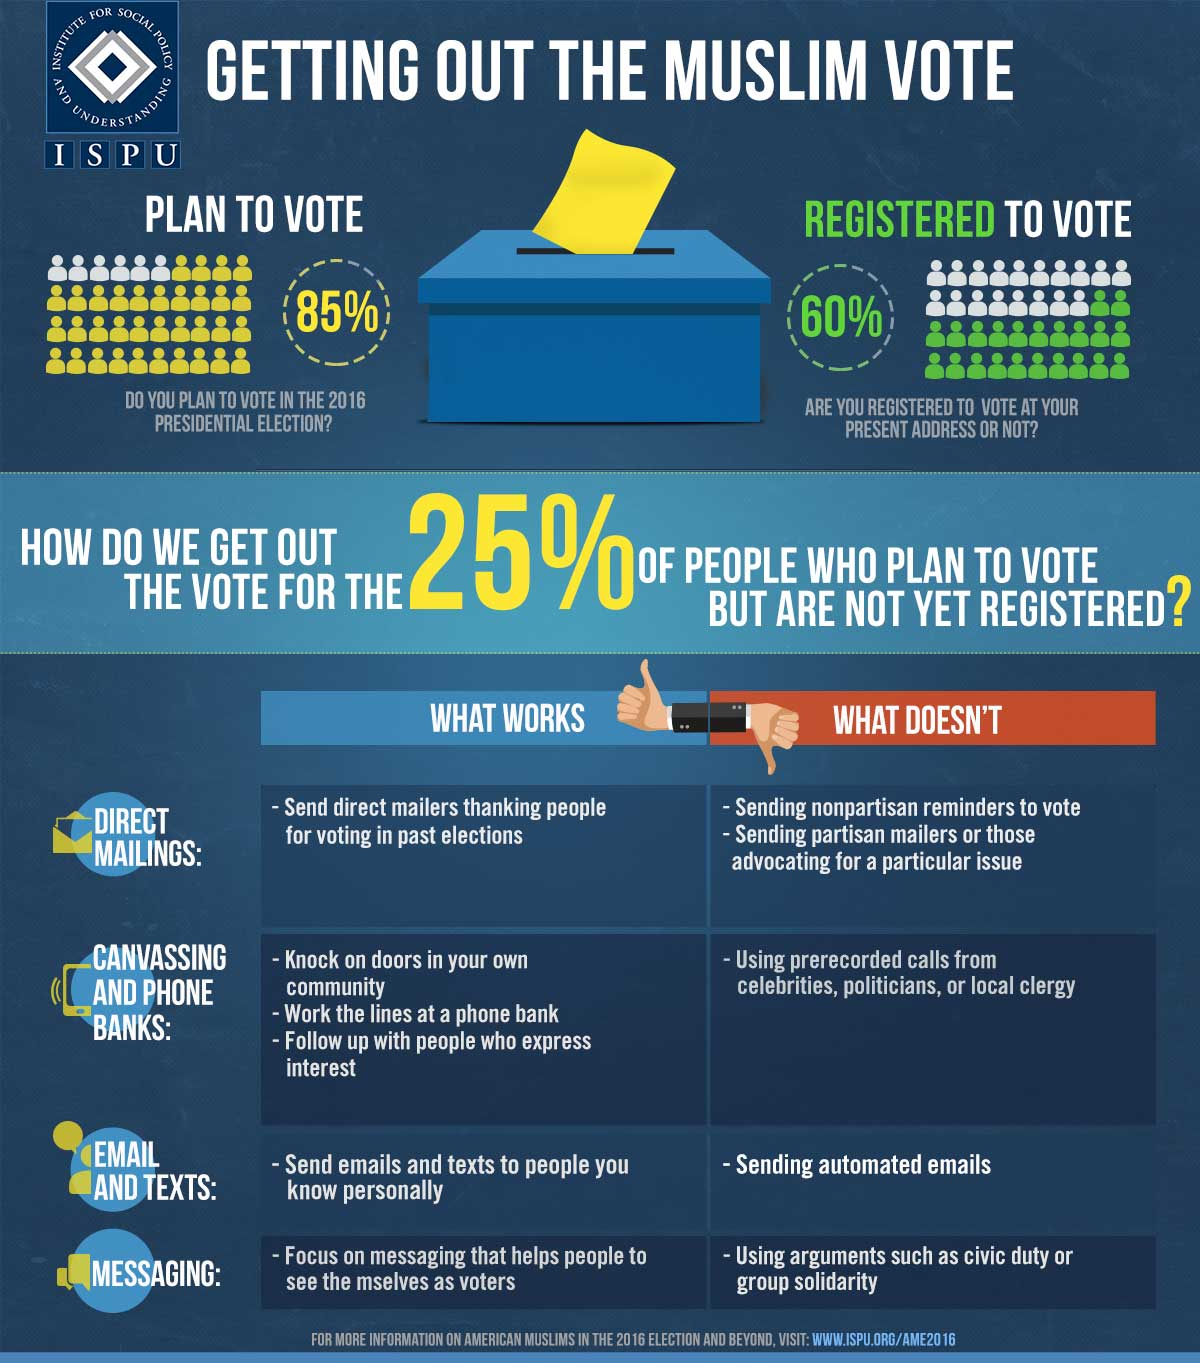 An infographic showing how to get out the Muslim vote. 85% of Muslim plan to vote, but only 60% are registered. How do we get out the vote for the 25% of people who plan to vote but are not yet registered? What works: direct mailers thanking people for voting in past elections, knocking on doors in your community, following up with people, sending emails and texts to people you know personally, focusing on messaging that helps people to see themselves as voters. What doesn't work: sending nonpartisan reminders to vote and sending partisan mailers, using prerecorded calls, sending automated emails, using arguments such as civic duty or group solidarity.